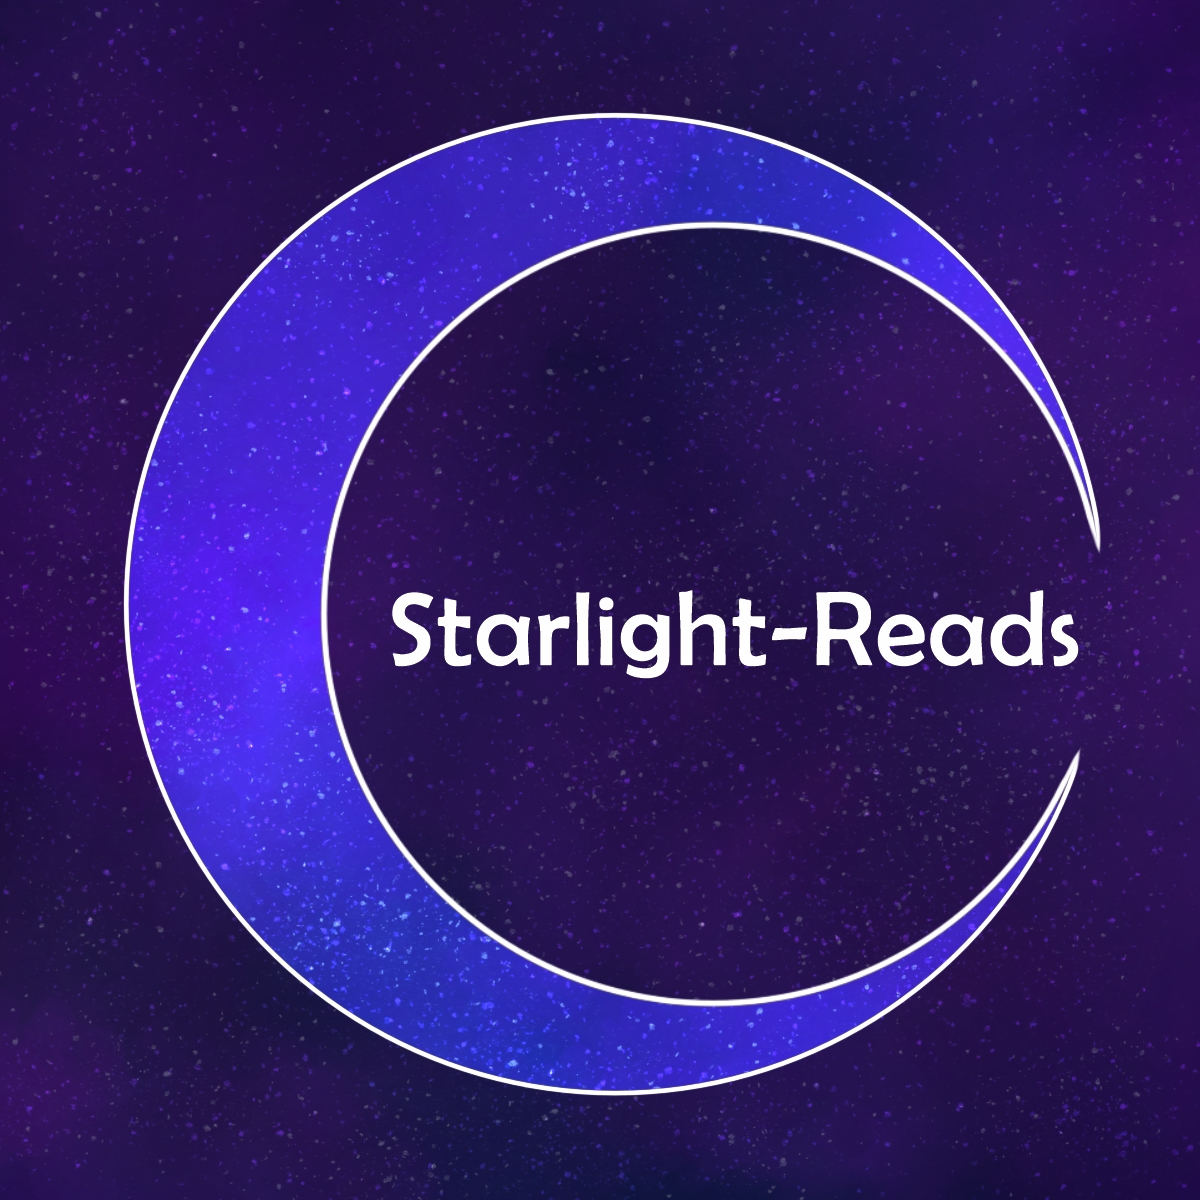 Starlight-Reads